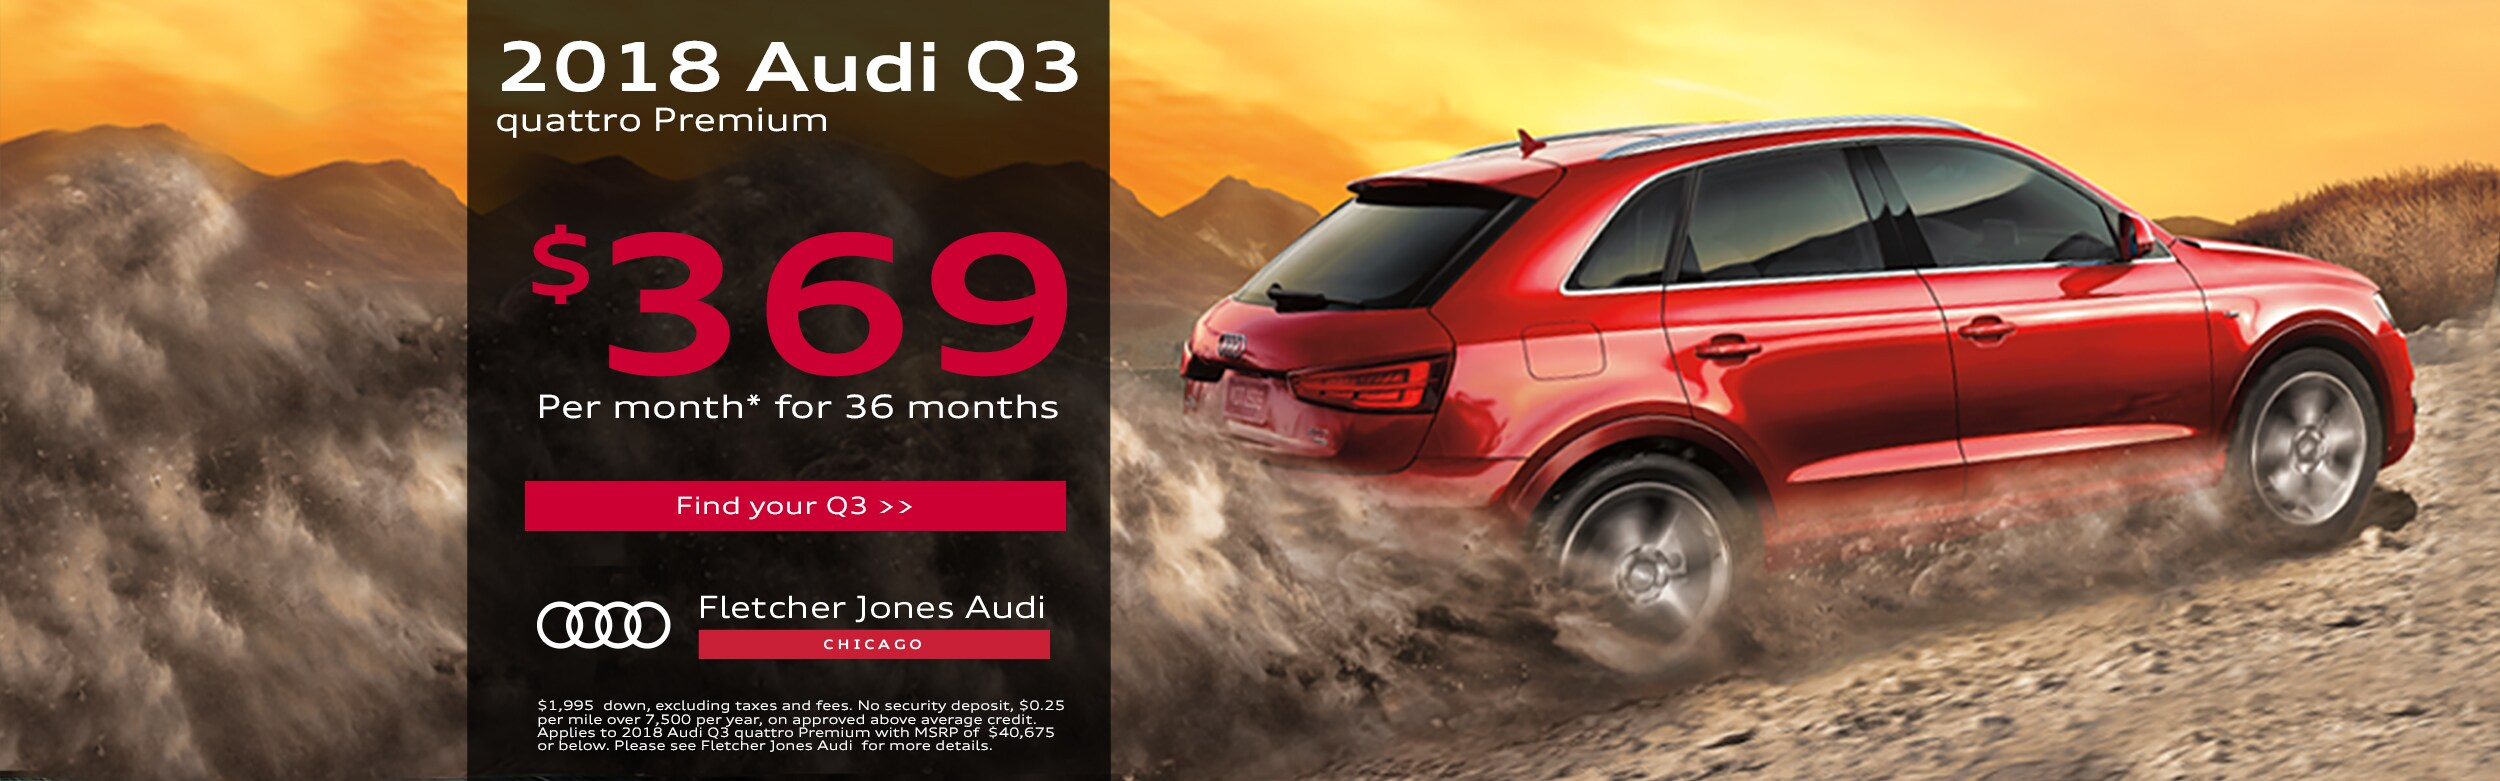 New Used Audi Dealership In Chicago IL Fletcher Jones Audi - Fletcher jones audi chicago